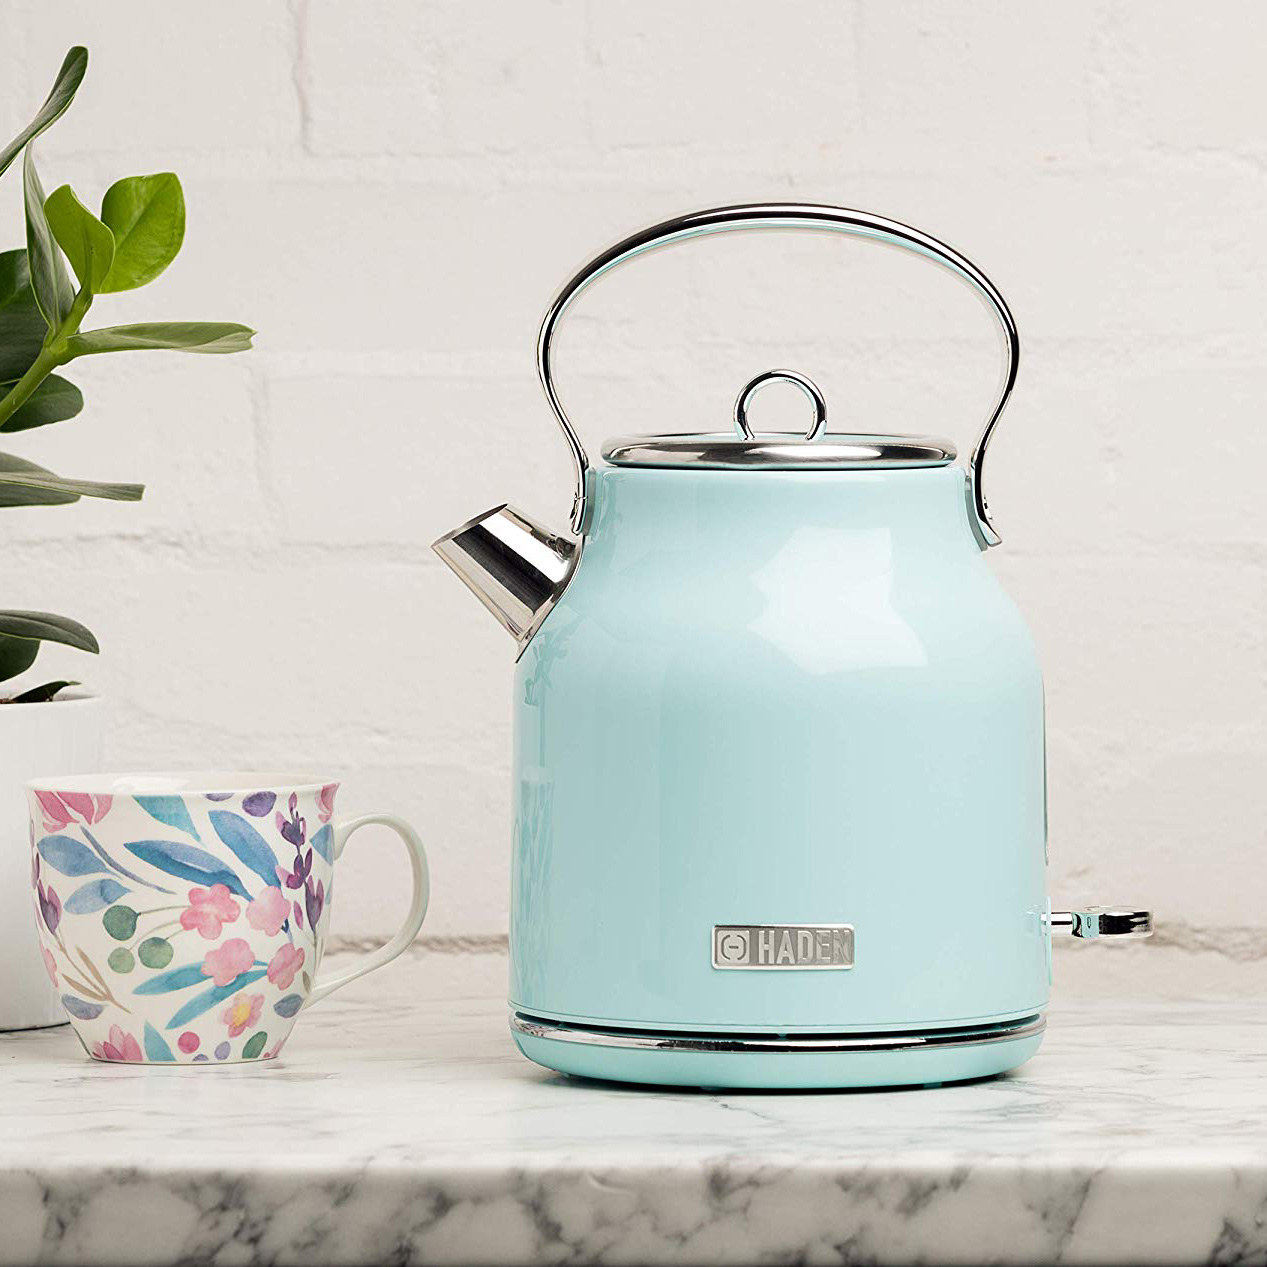 The tea kettle in light blue, with silver handle, lid and spout